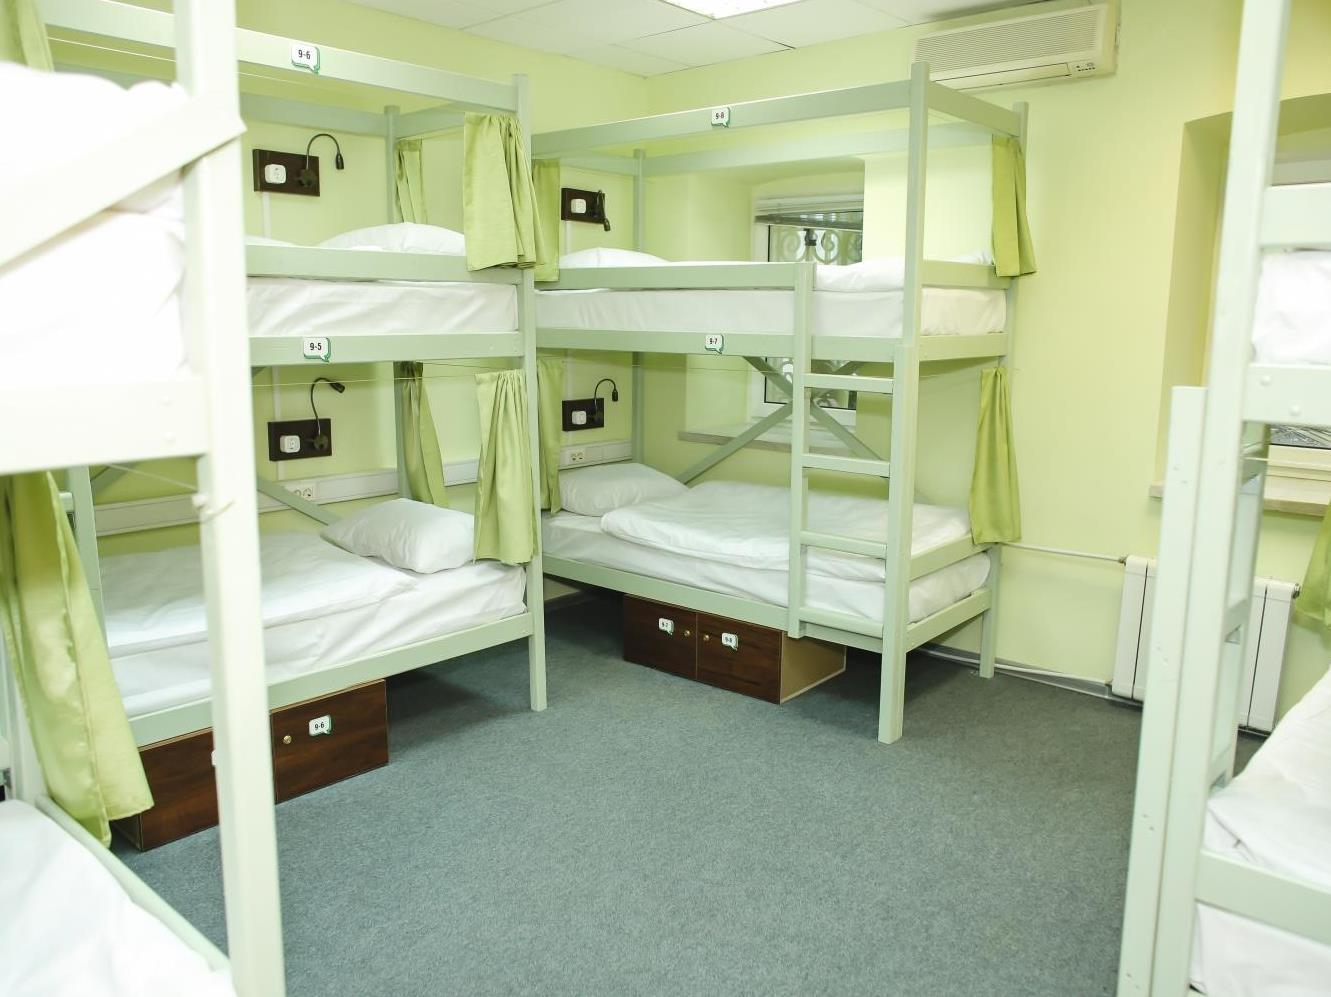 1 Person in 18-Bed Dormitory - Mixed